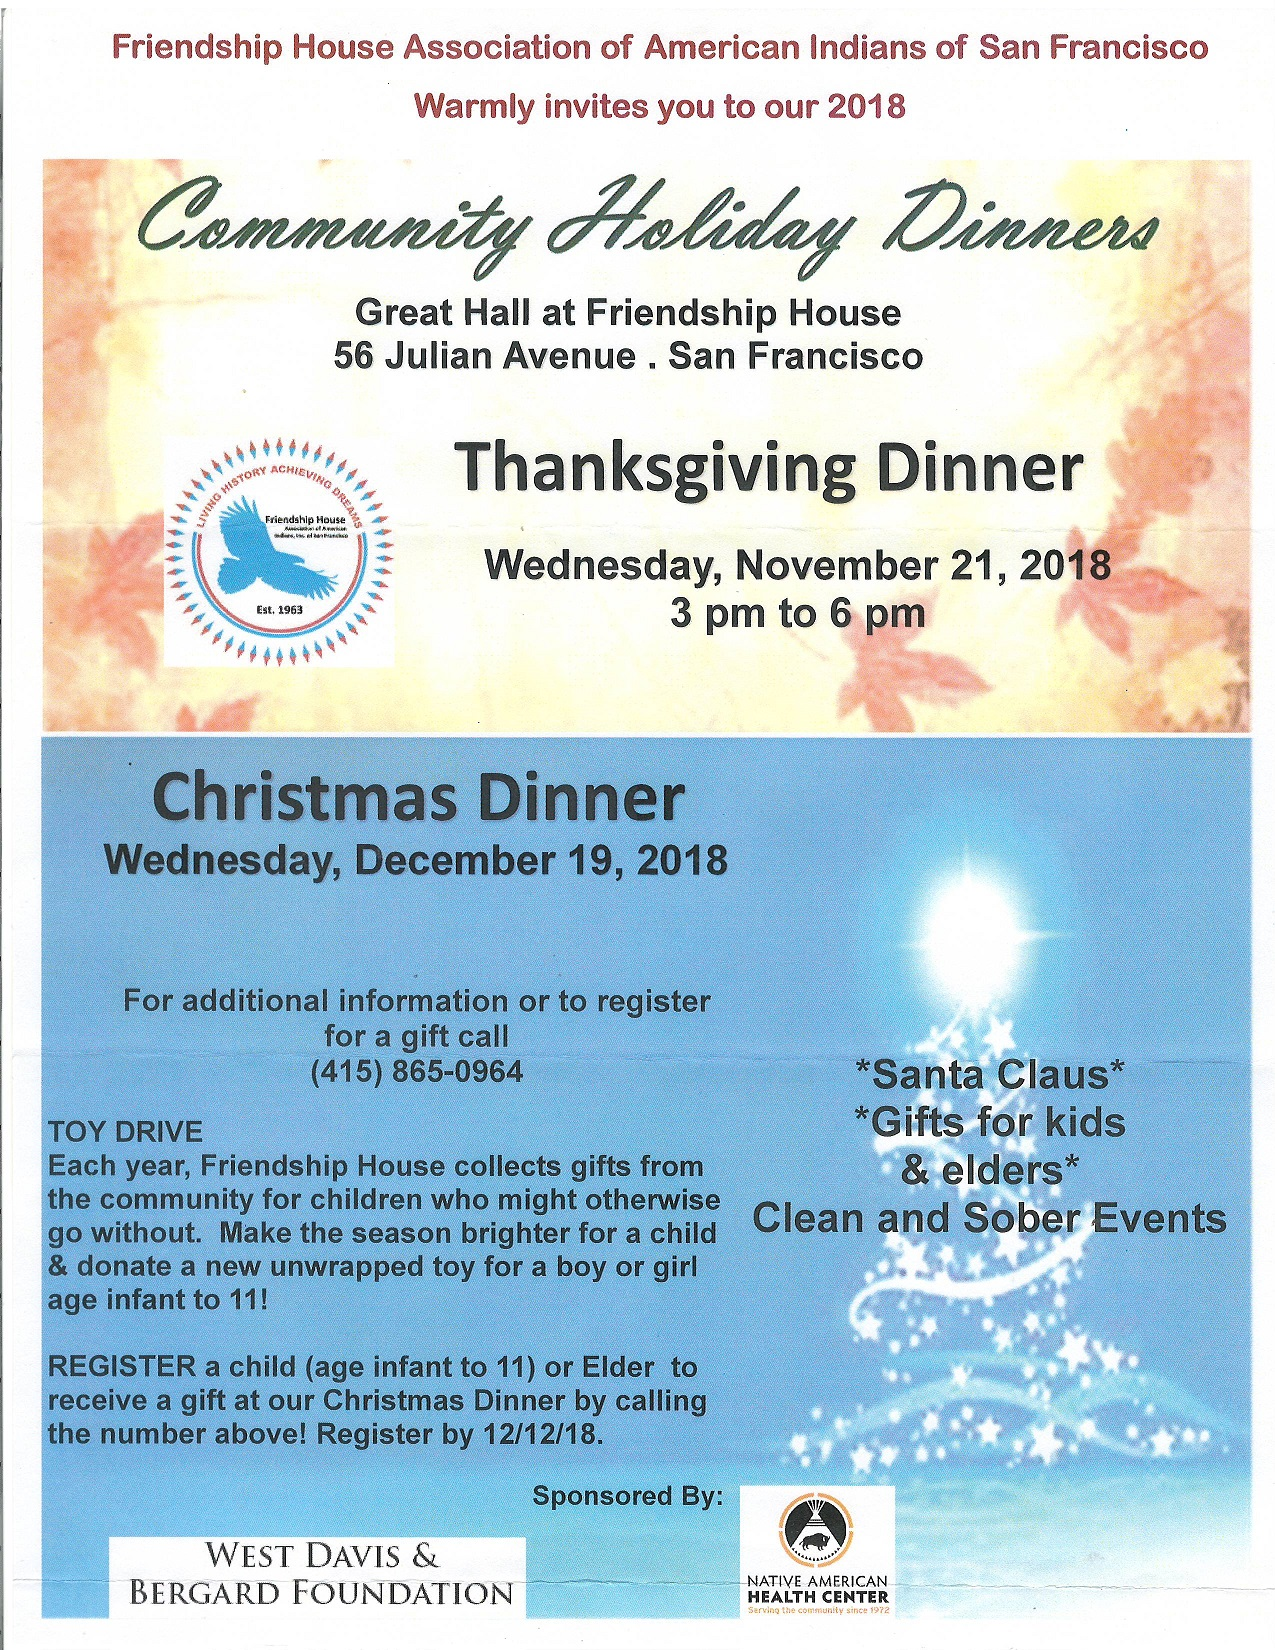 Friendship House Hosts Holiday Dinners